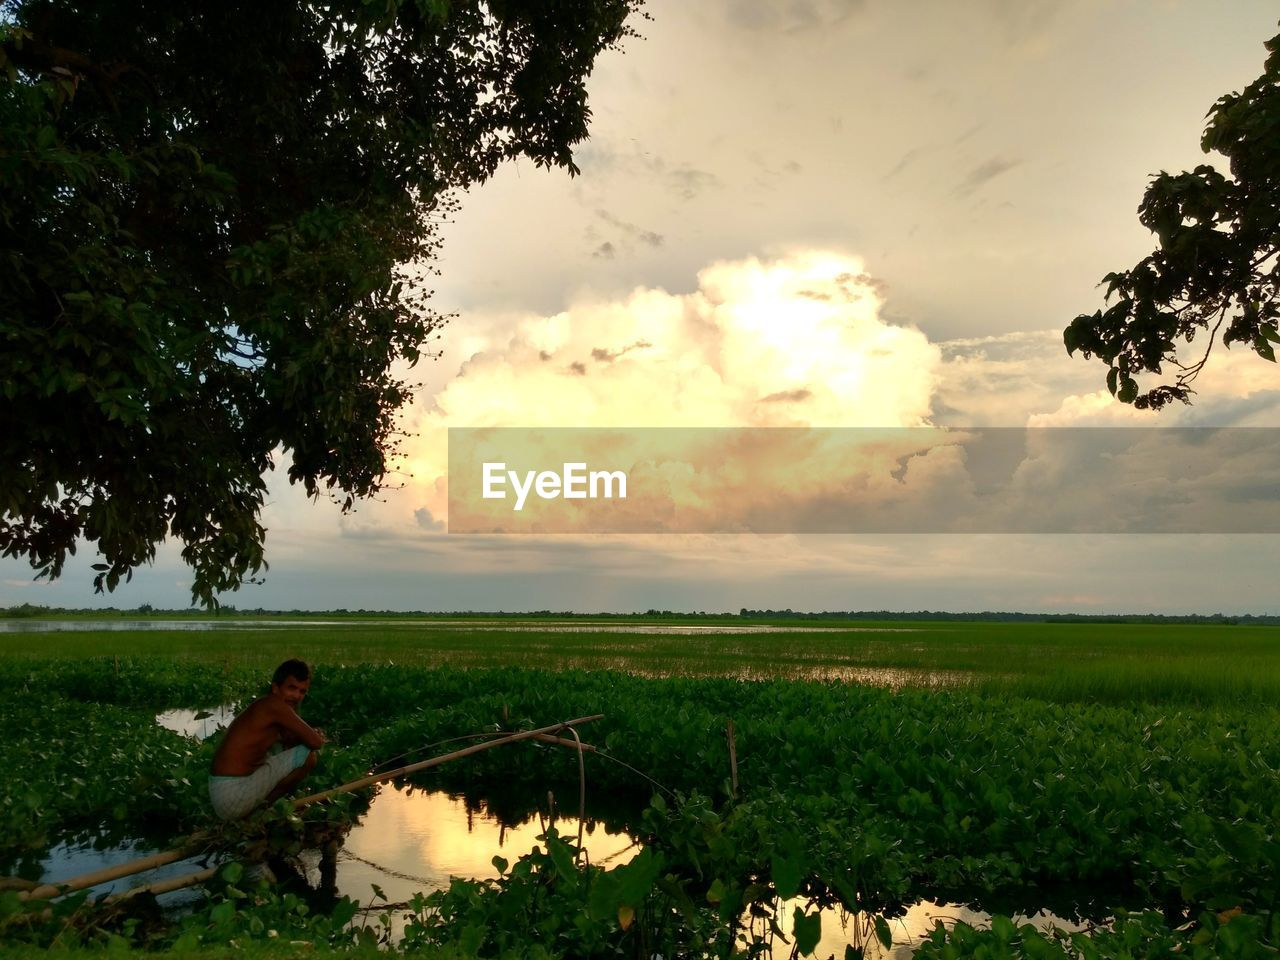 growth, tree, agriculture, nature, field, sky, farm, one person, sunset, real people, outdoors, plant, cloud - sky, rural scene, beauty in nature, full length, landscape, farmer, scenics, men, day, grass, lifestyles, farm worker, women, domestic animals, water, mammal, young adult, people